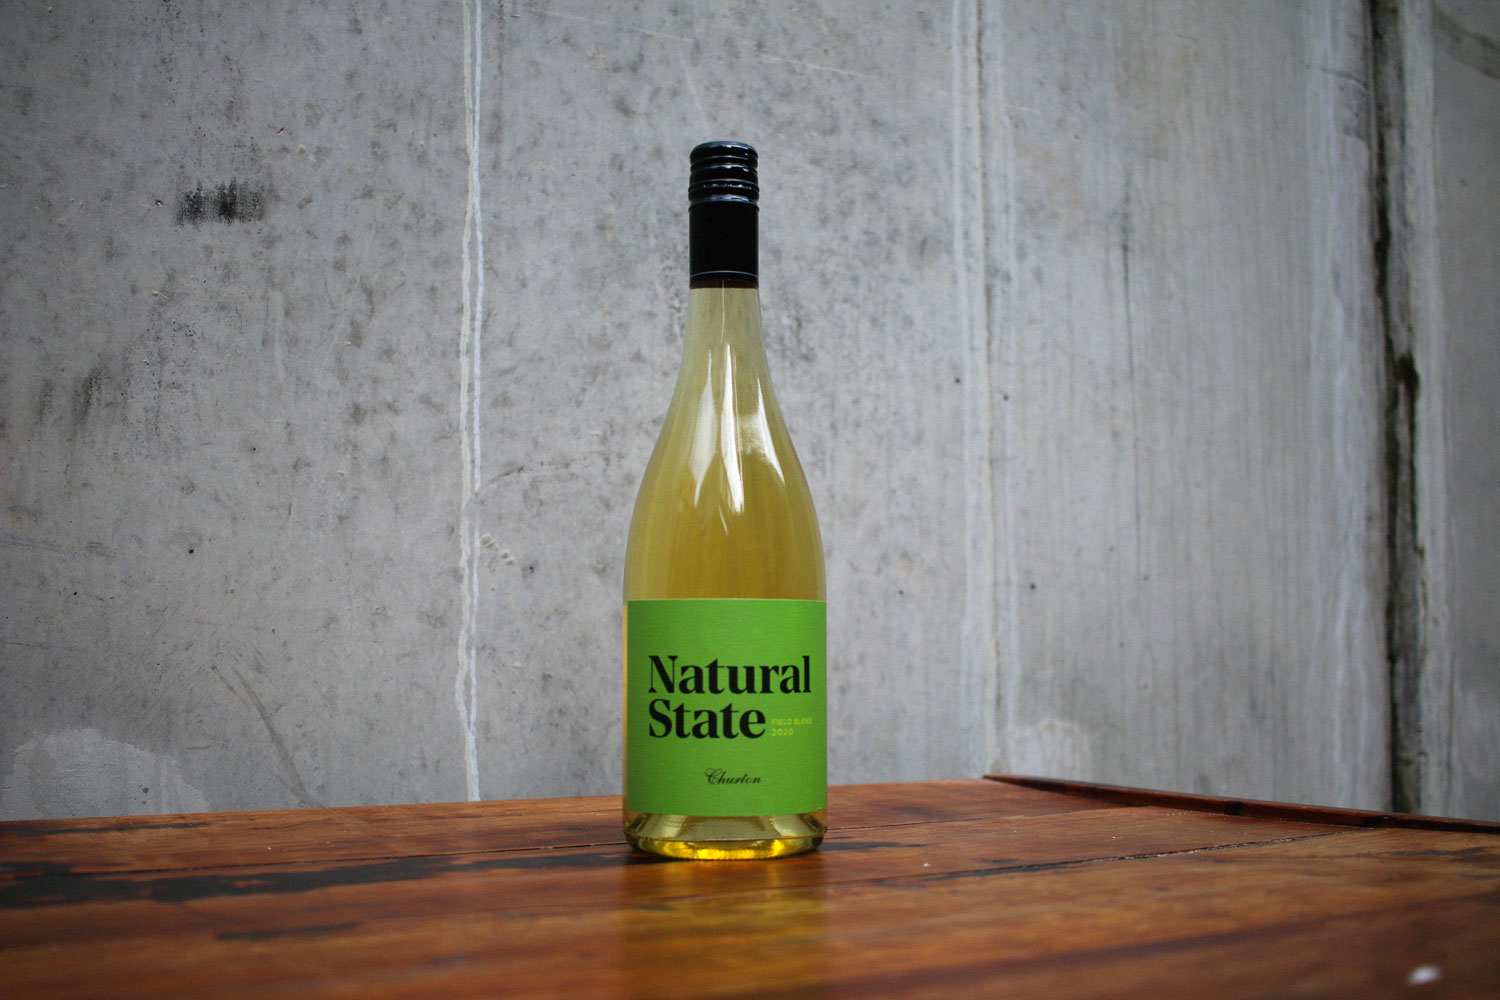 2020 Churton 'Natural State' Field Blend